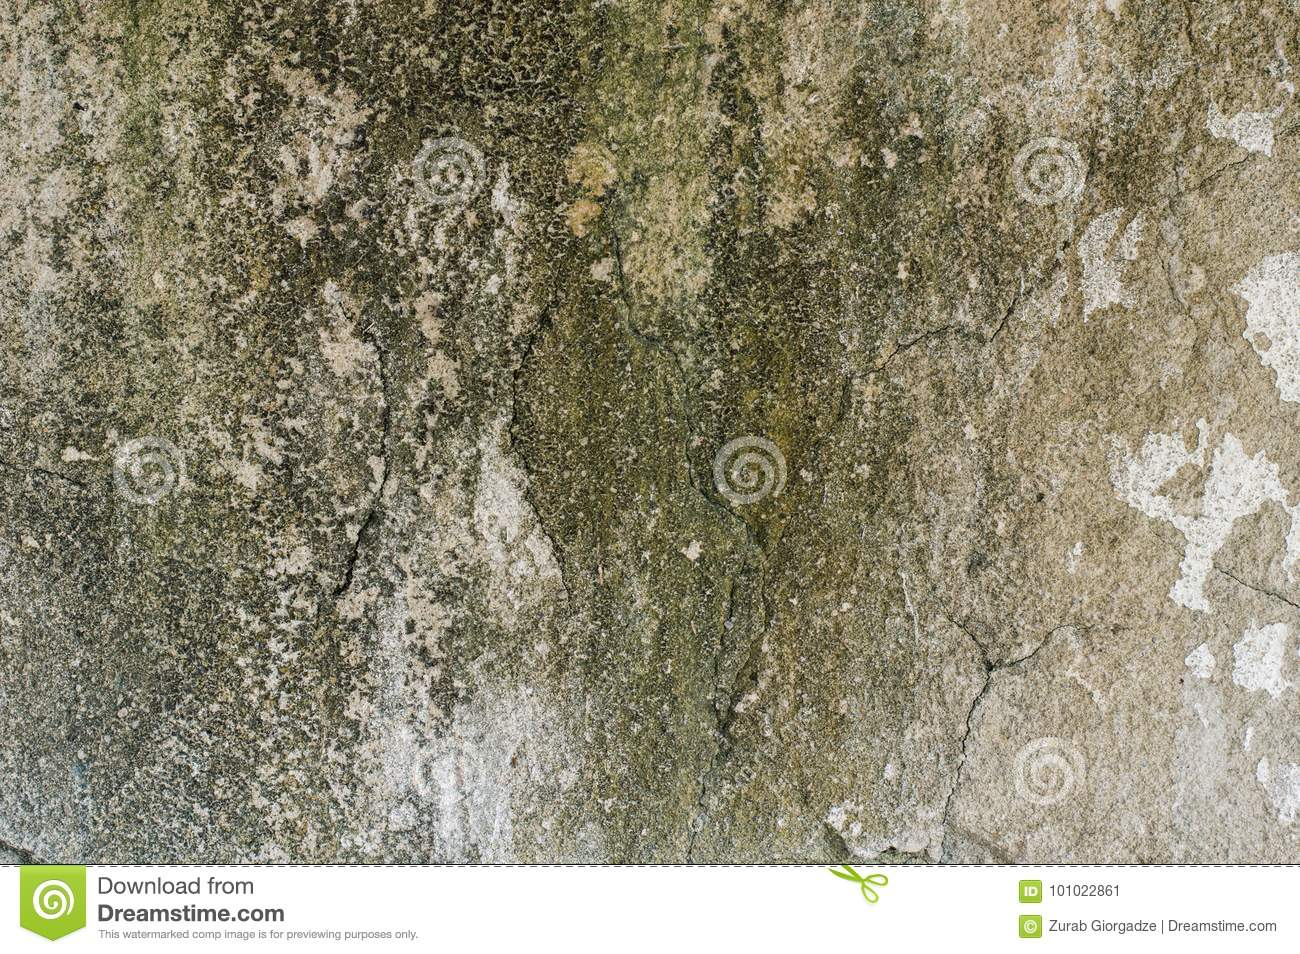 Dump wall stock image  Image of surface, dumped, filth